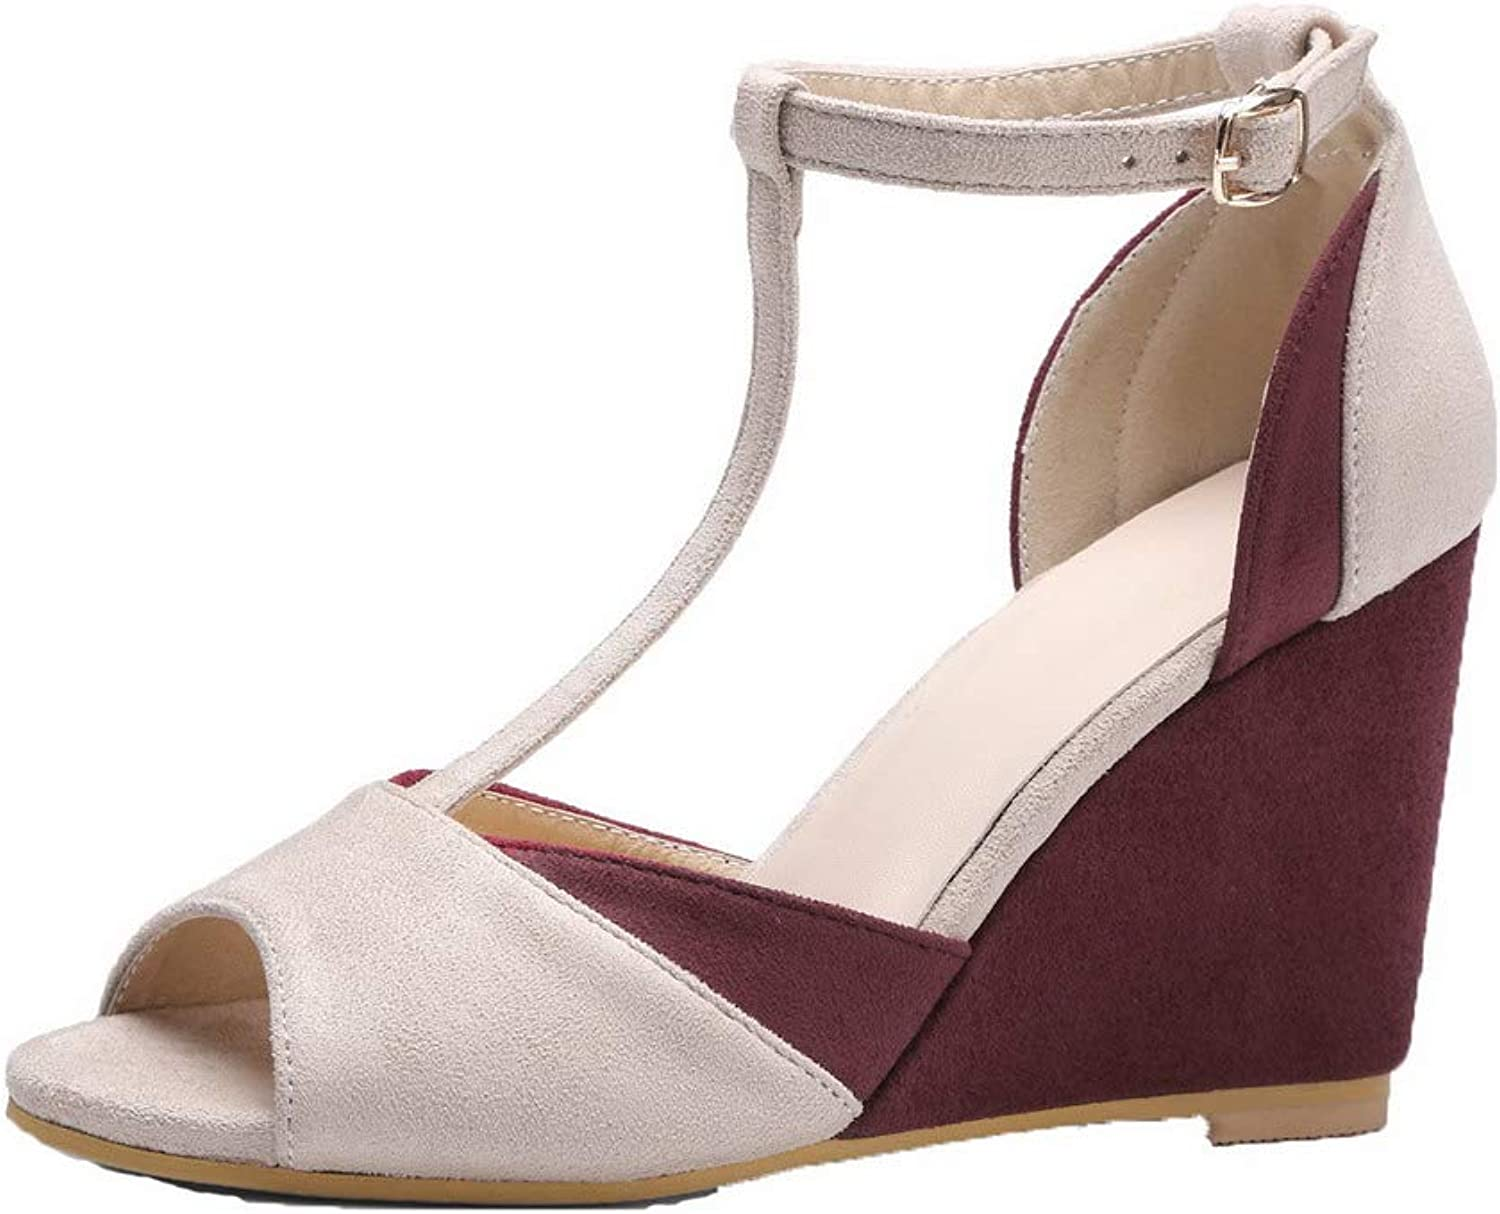 WeenFashion Women's Imitated Suede High-Heels Assorted color Buckle Sandals